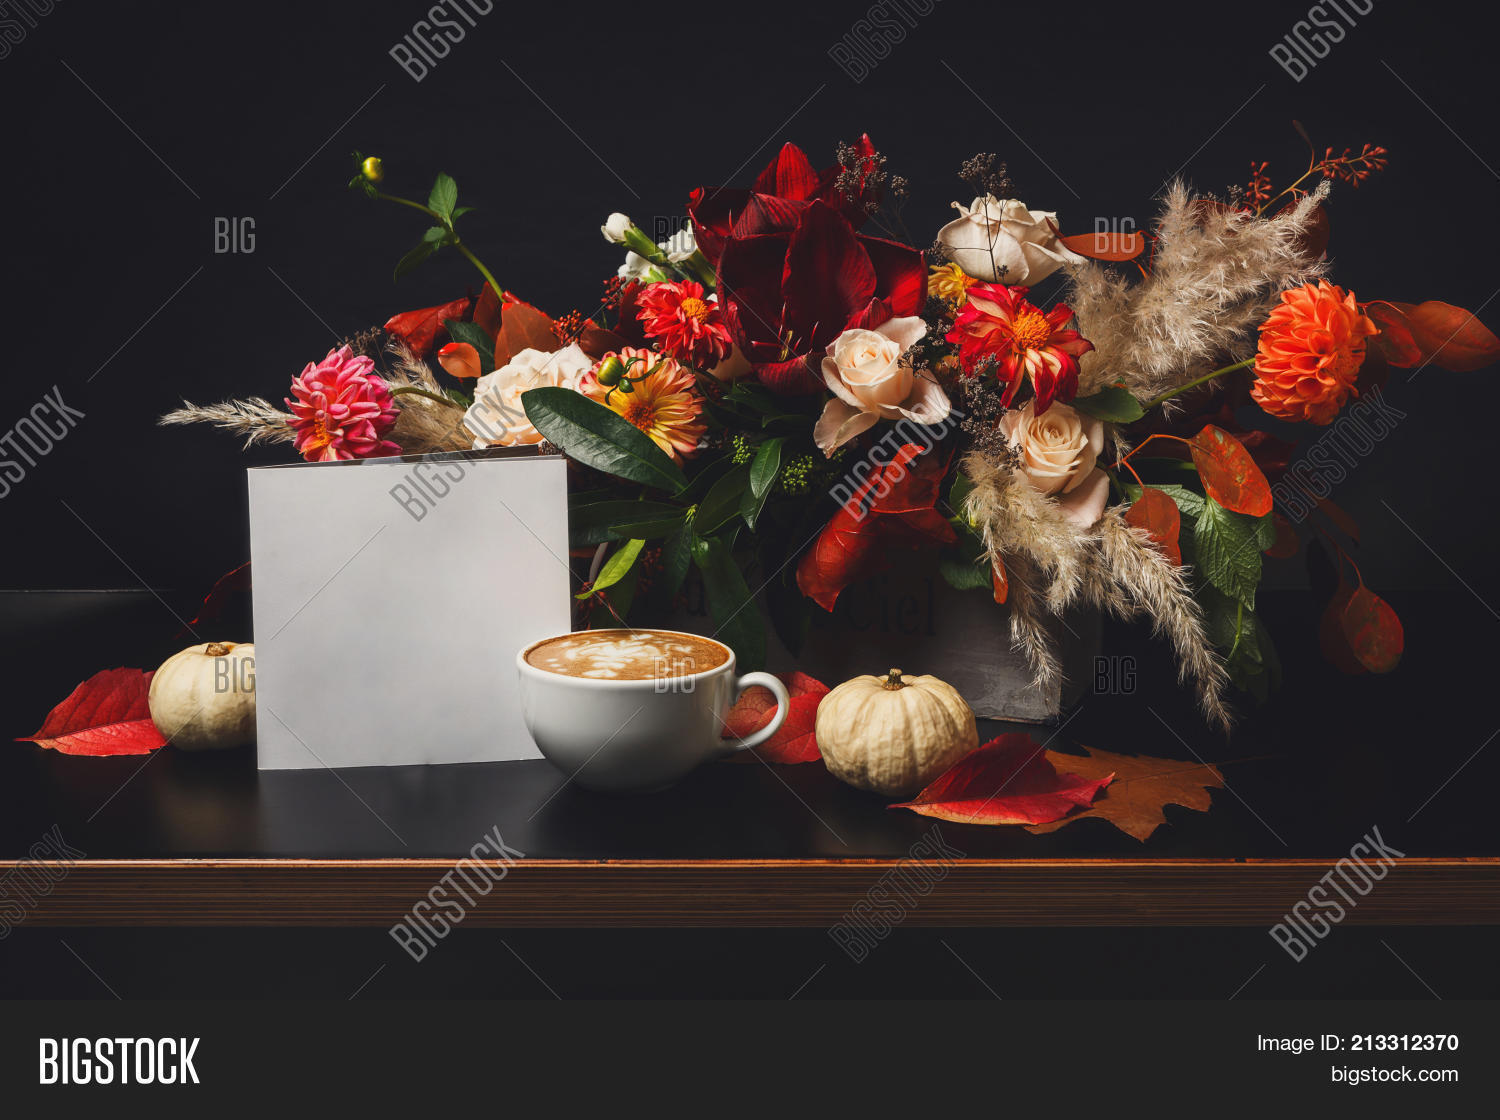 Cappuccino beautiful image photo free trial bigstock cappuccino and beautiful flowers still life flower shop composition coffee cup apple izmirmasajfo